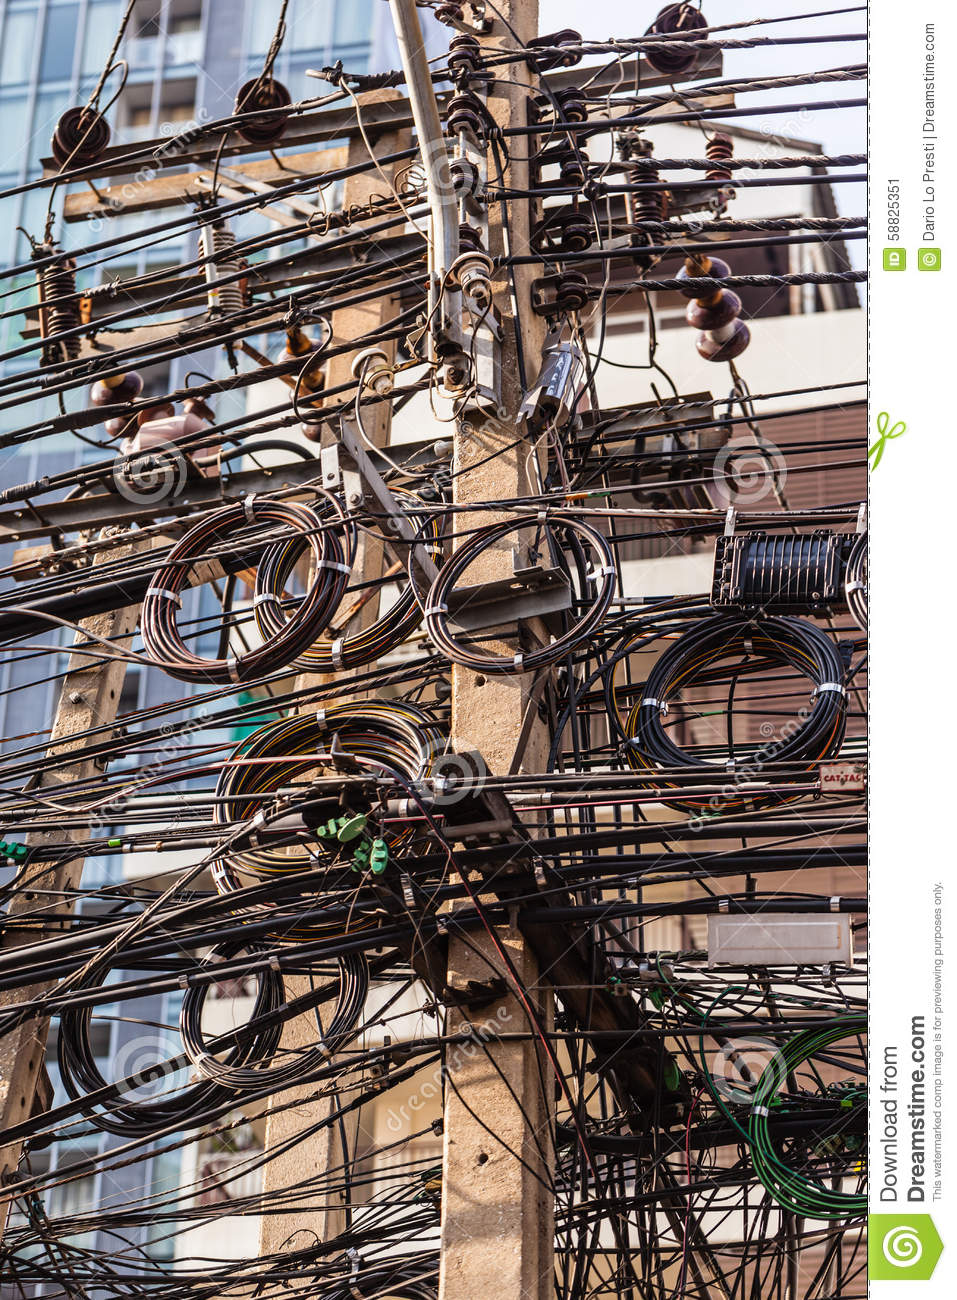 hight resolution of very messy electricity or telephone pole in bangkok thailand